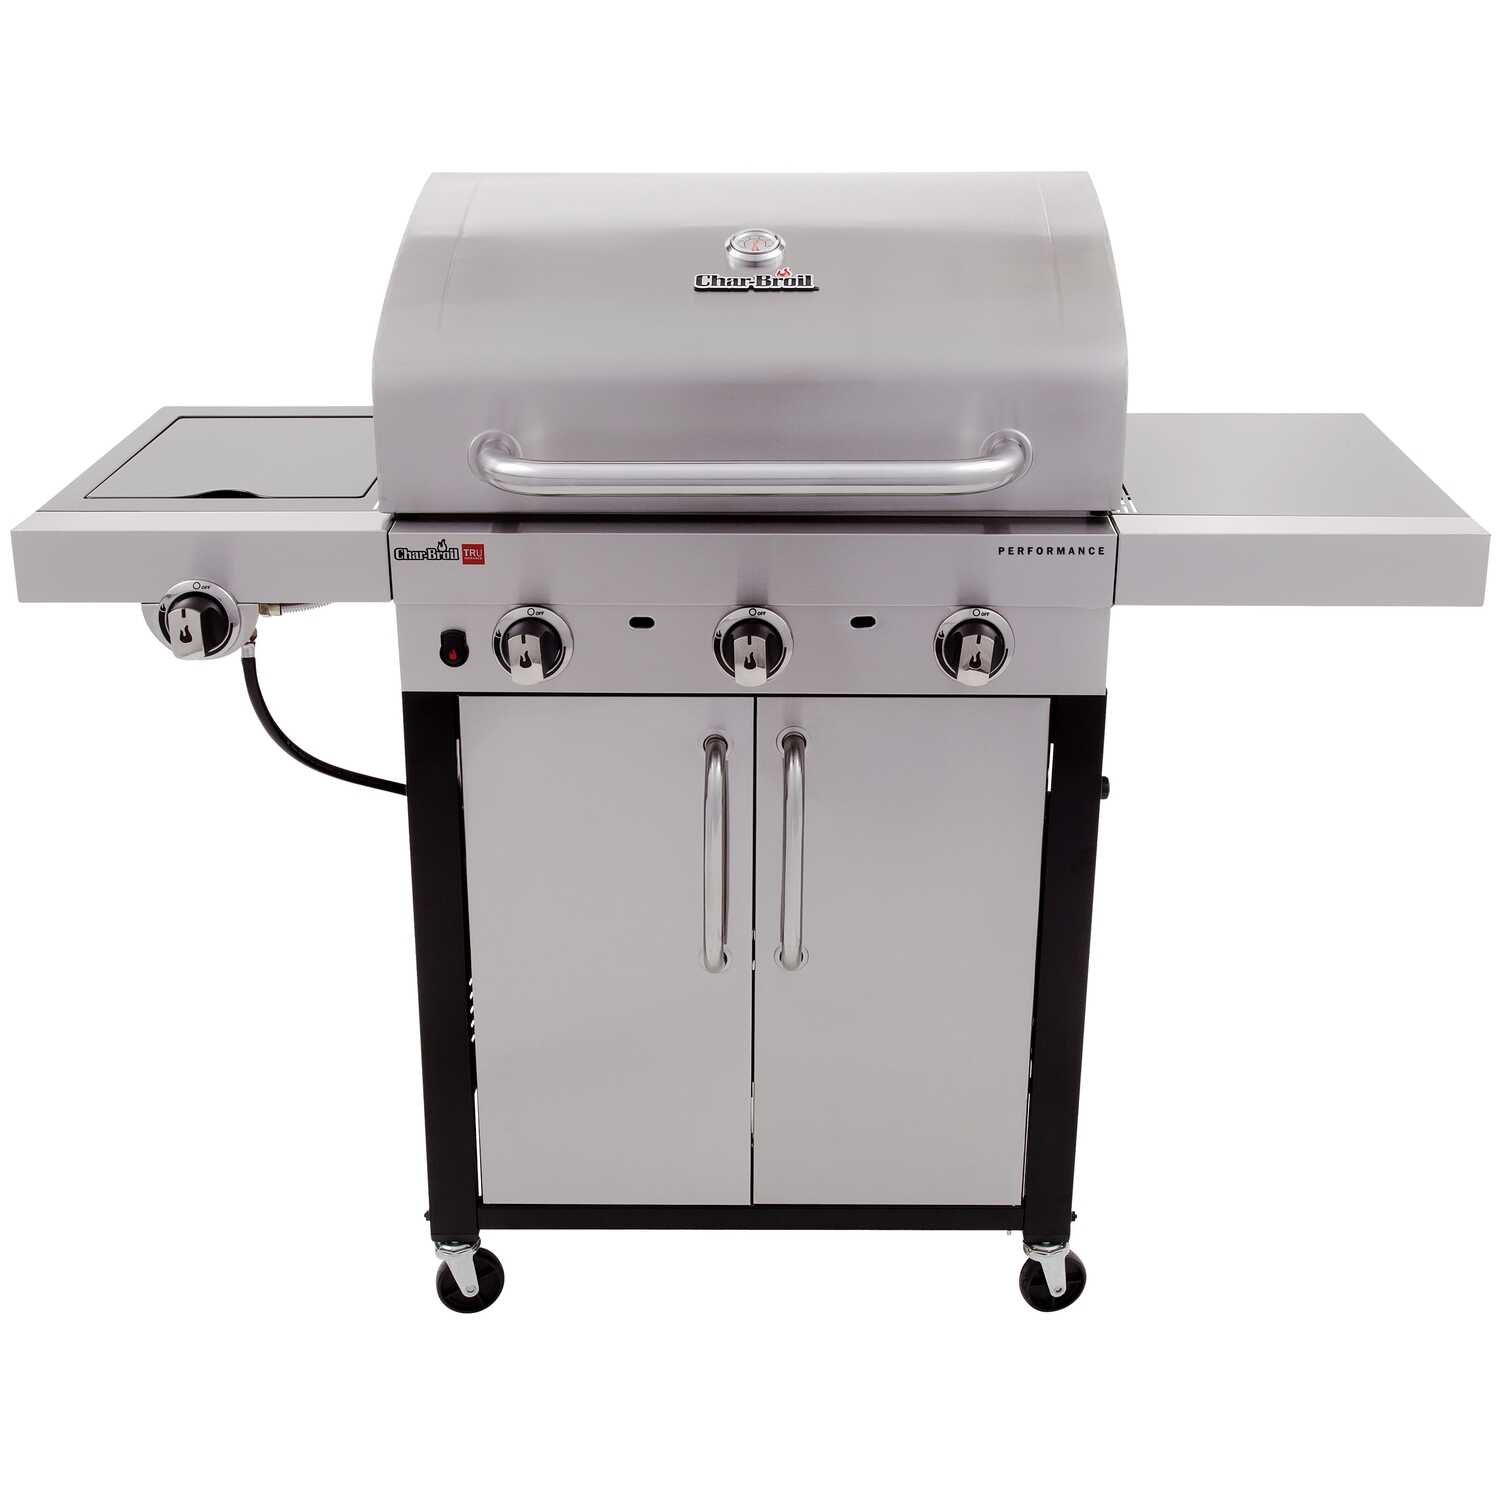 Char-Broil  Performance  3 burners Propane  Grill  Stainless Steel  24000 BTU